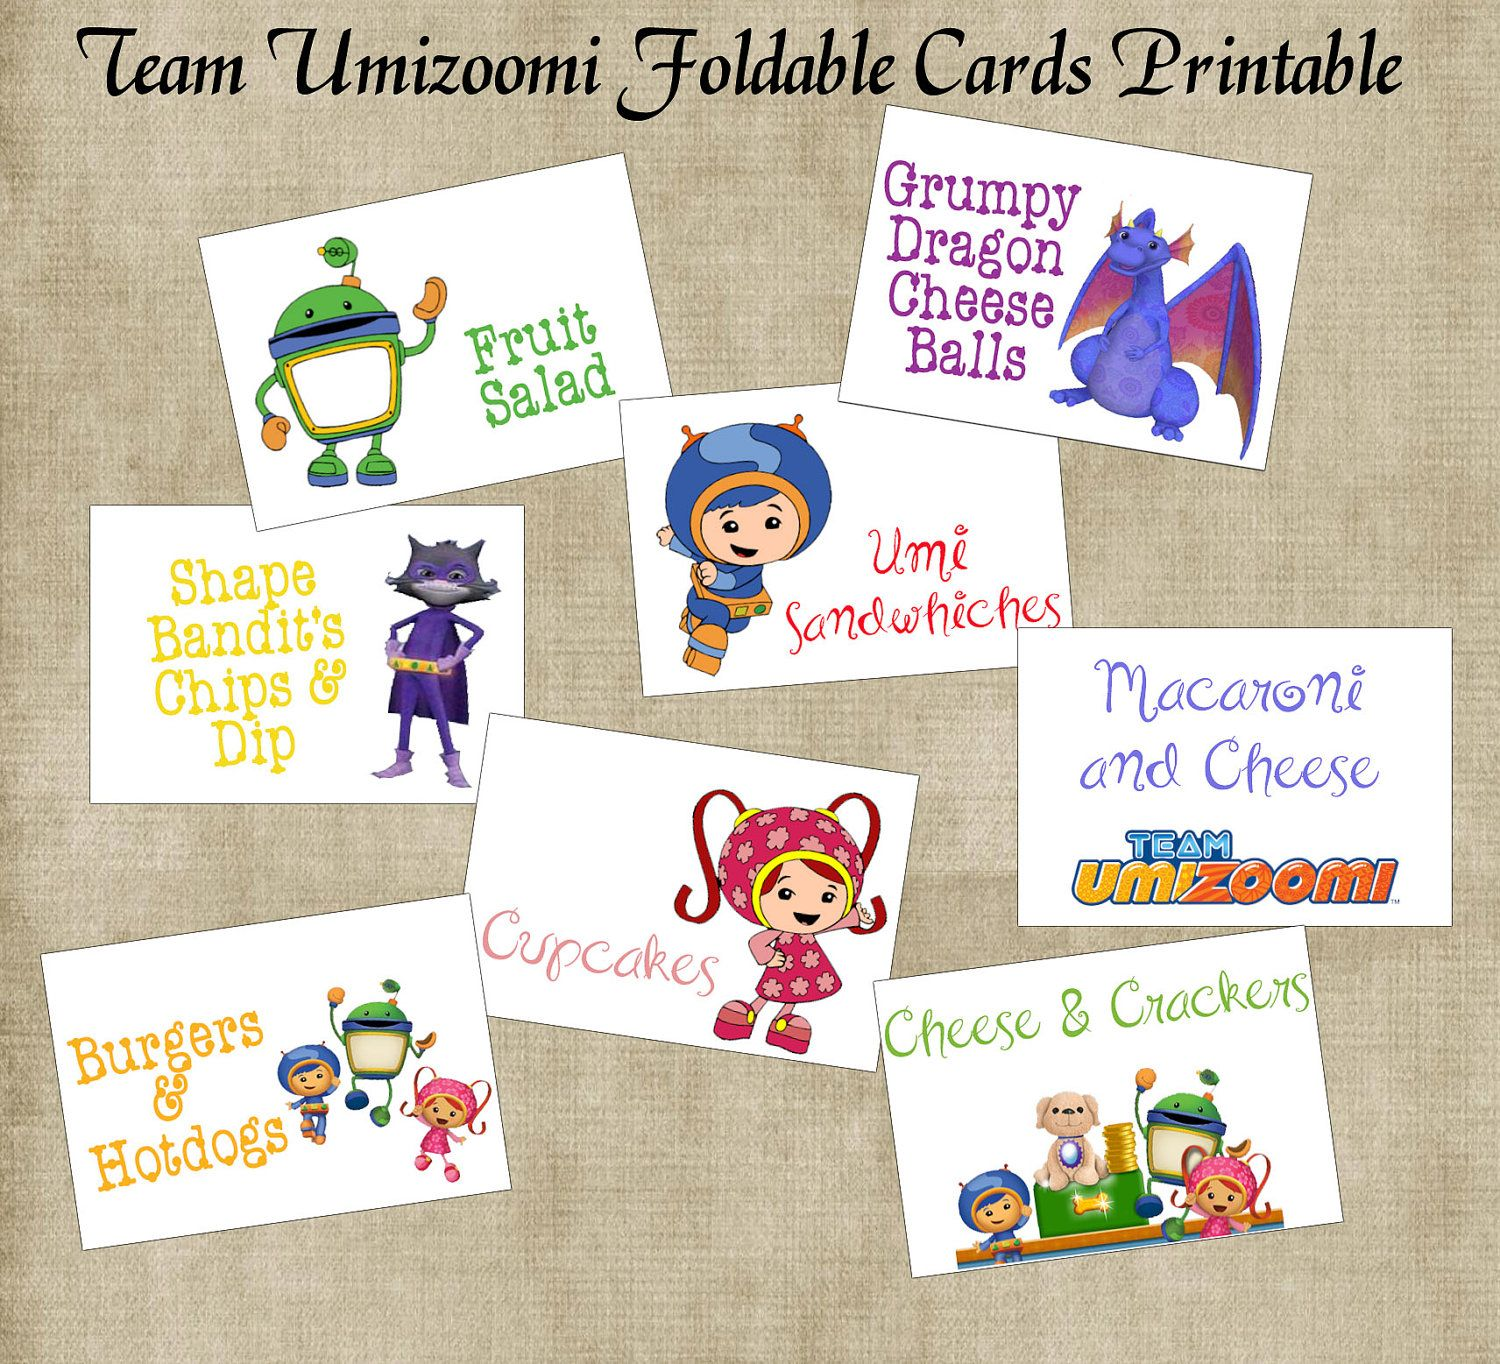 Team Umizoomi Birthday Party Foldable Cards Printables Set of 8